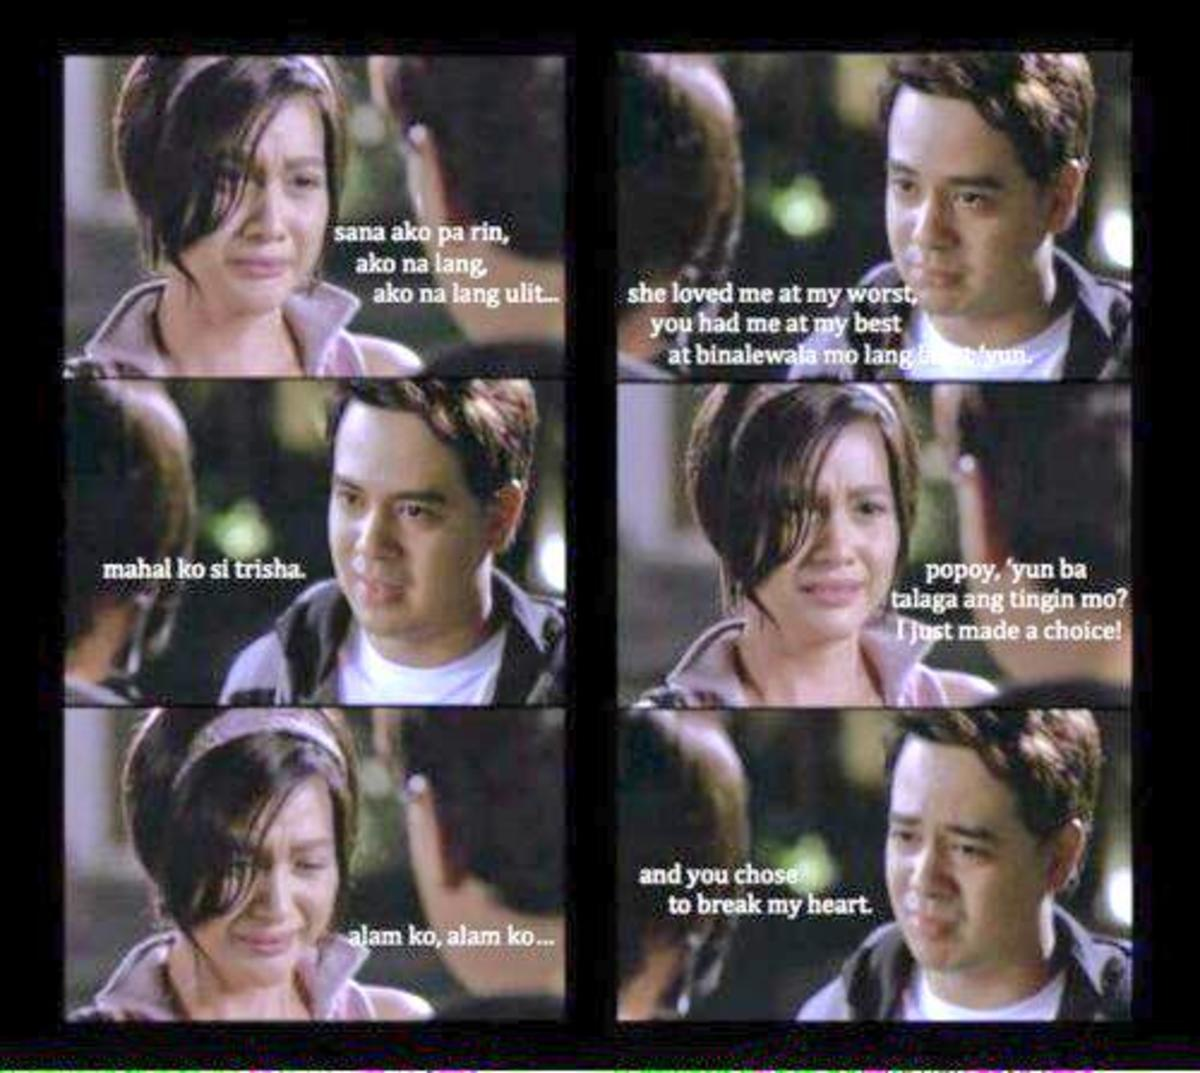 30 Greatest Quotes And Hugot Lines From Filipino Movies | HubPages